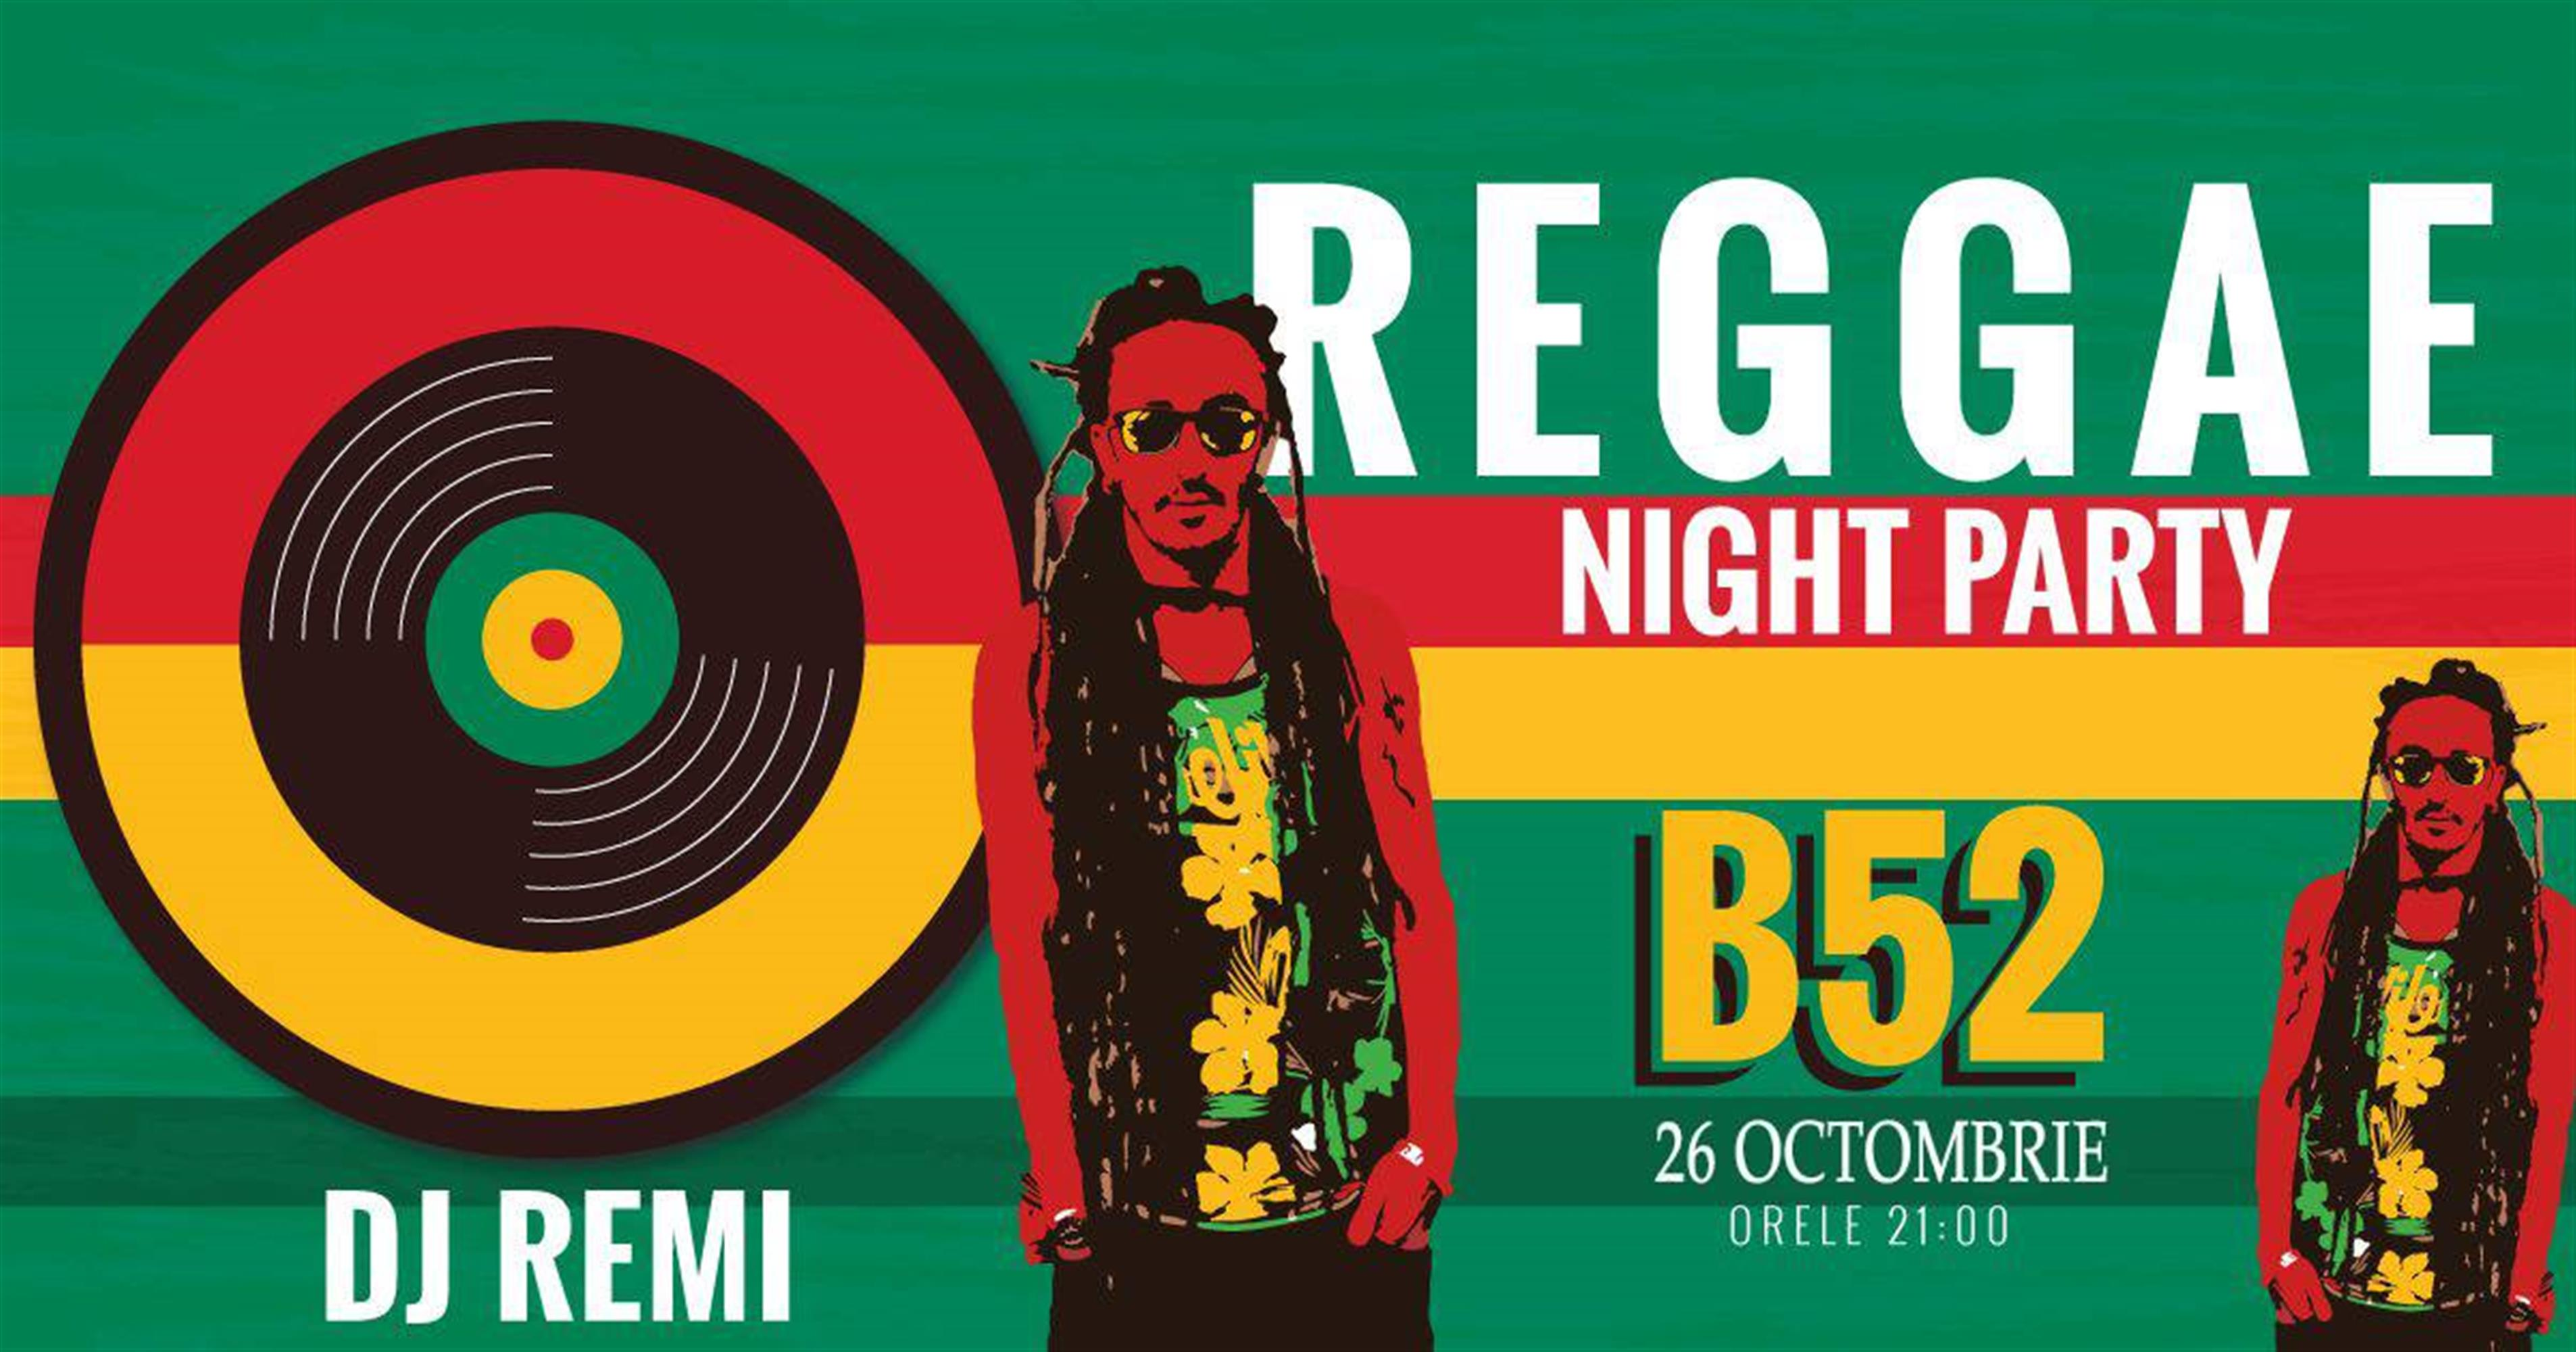 Reggae Party cu Dj Remi at club B52